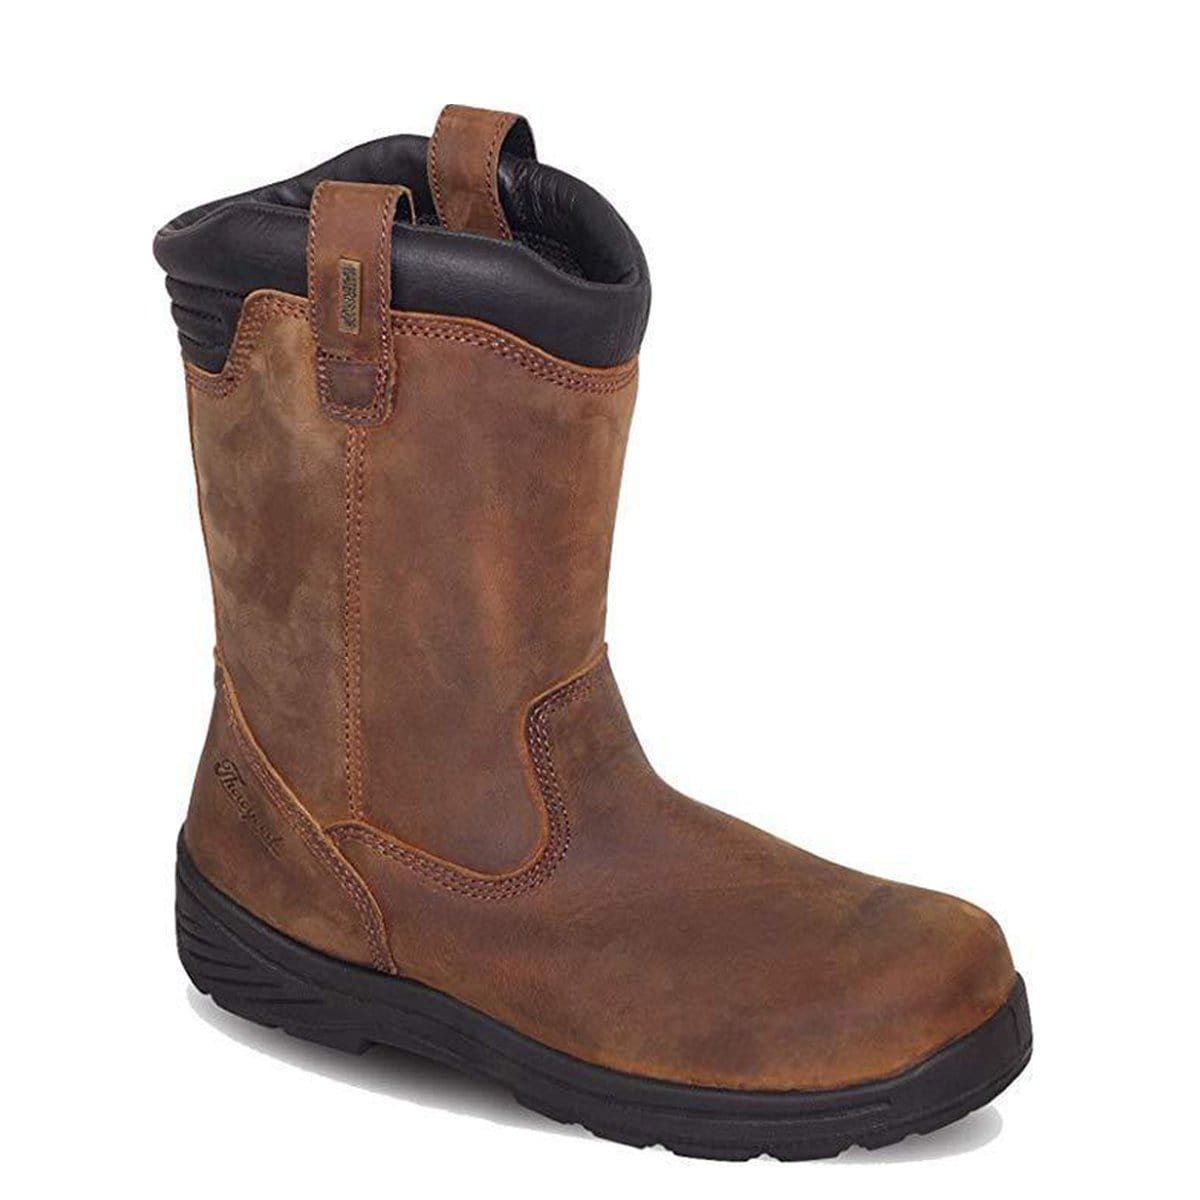 Thorogood Men's Thoro-Flex 11in Pull-On Wellington, Waterproof Composite Safety Toe Boot 804-3169